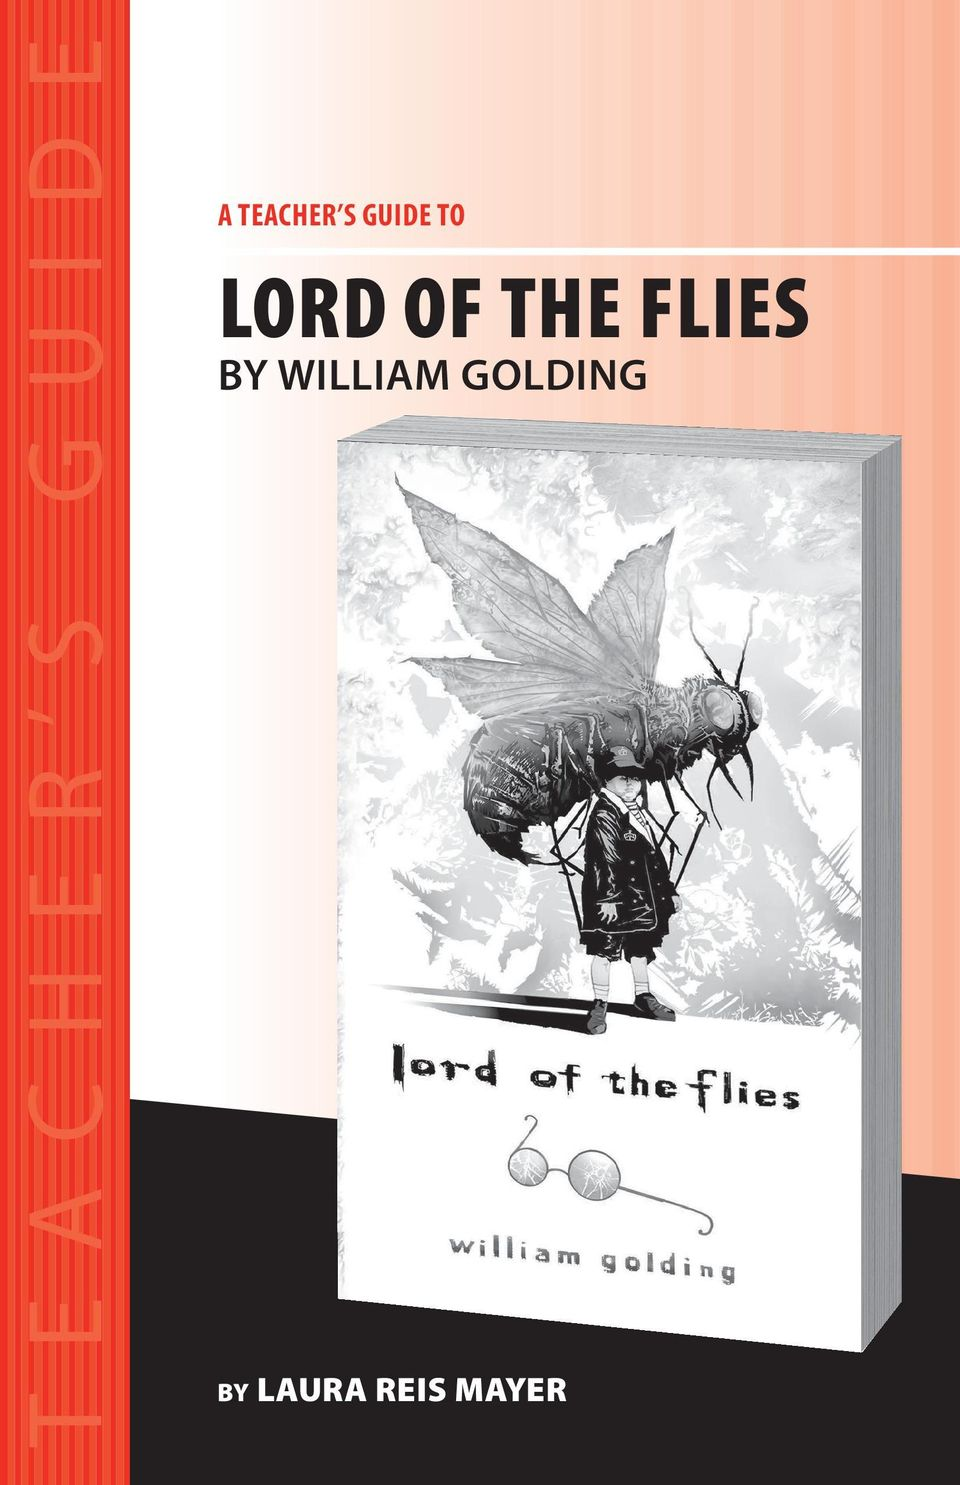 lord of the flies research paper Free term paper on lord of the flies available totally free at planetpaperscom, the largest free term paper community  book report or research paper in seconds.